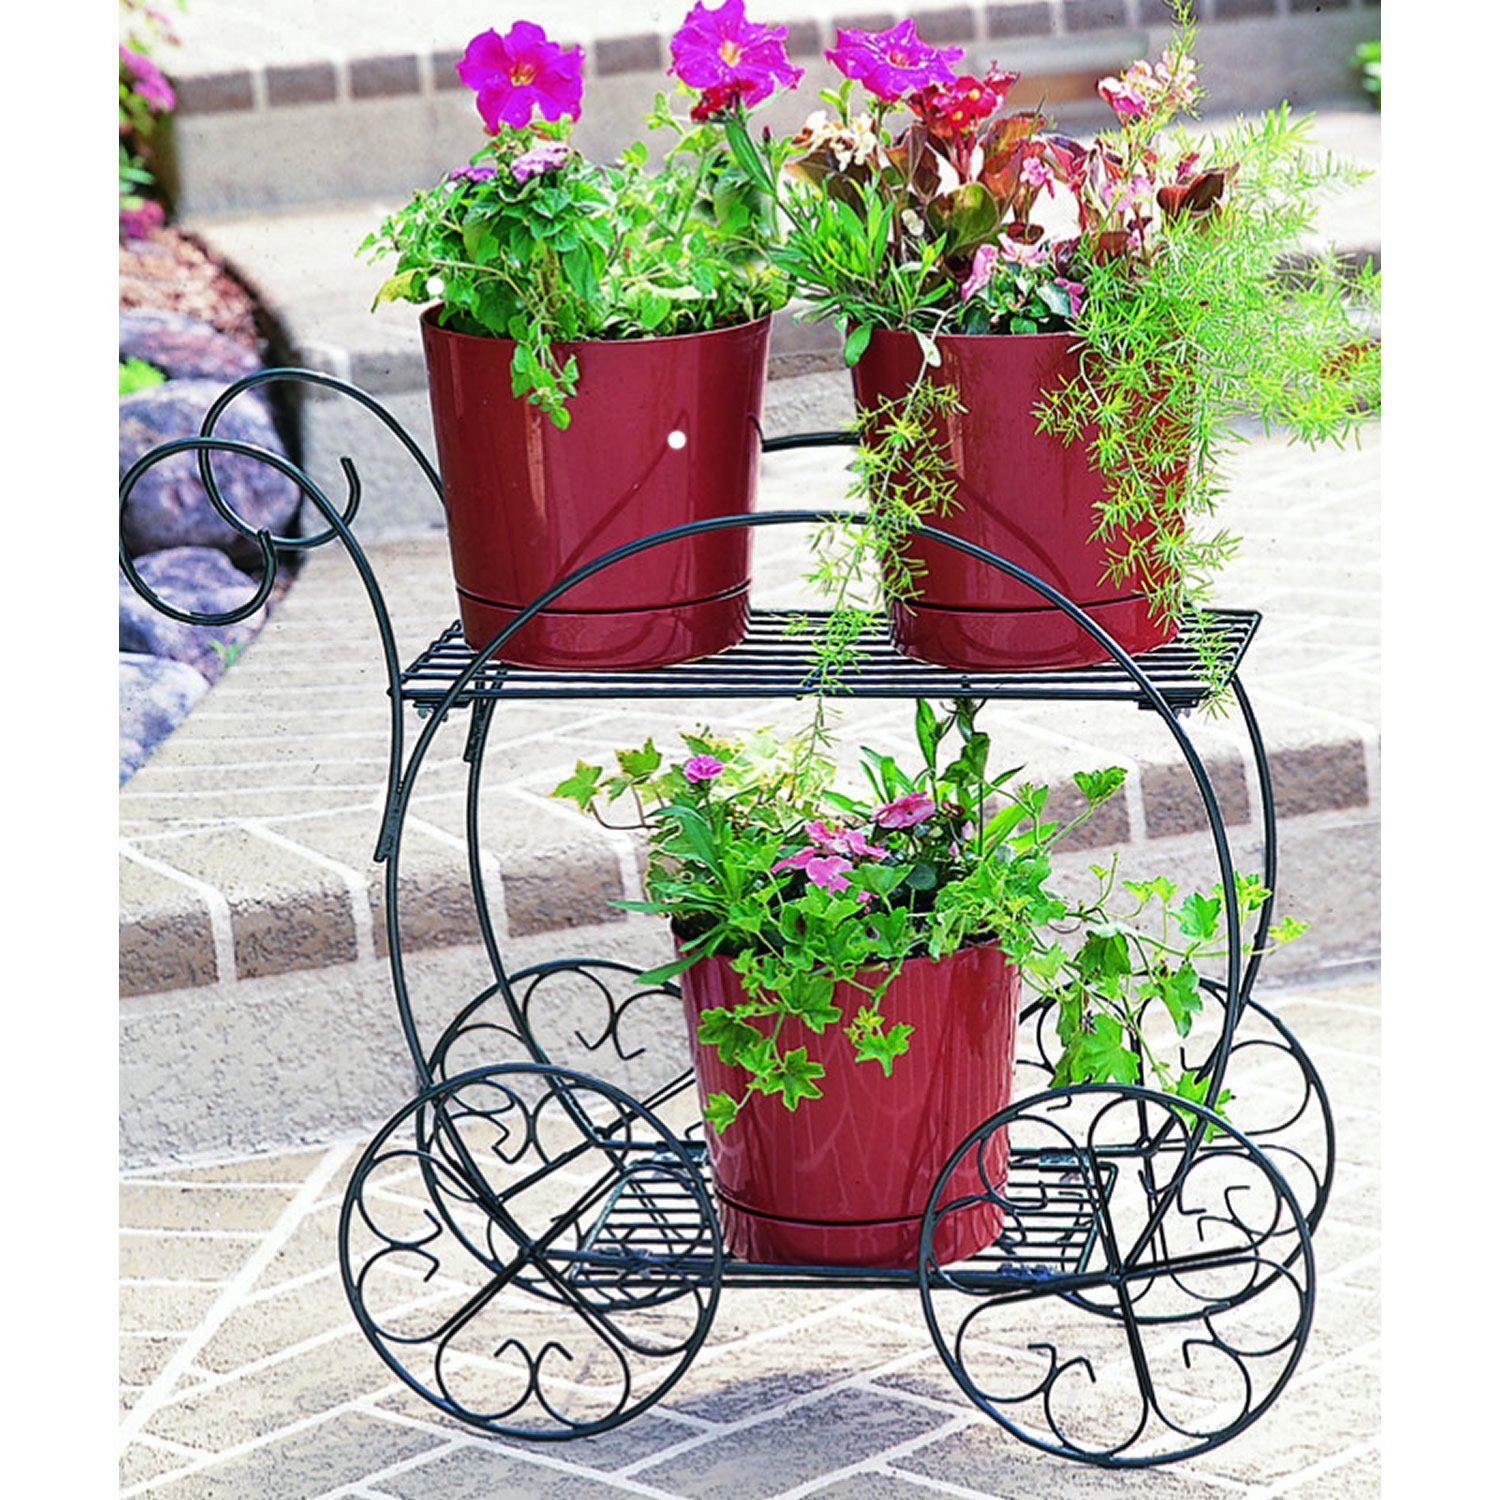 Green flower stand 2 tier patio plant holder garden decor for Patio garden accessories